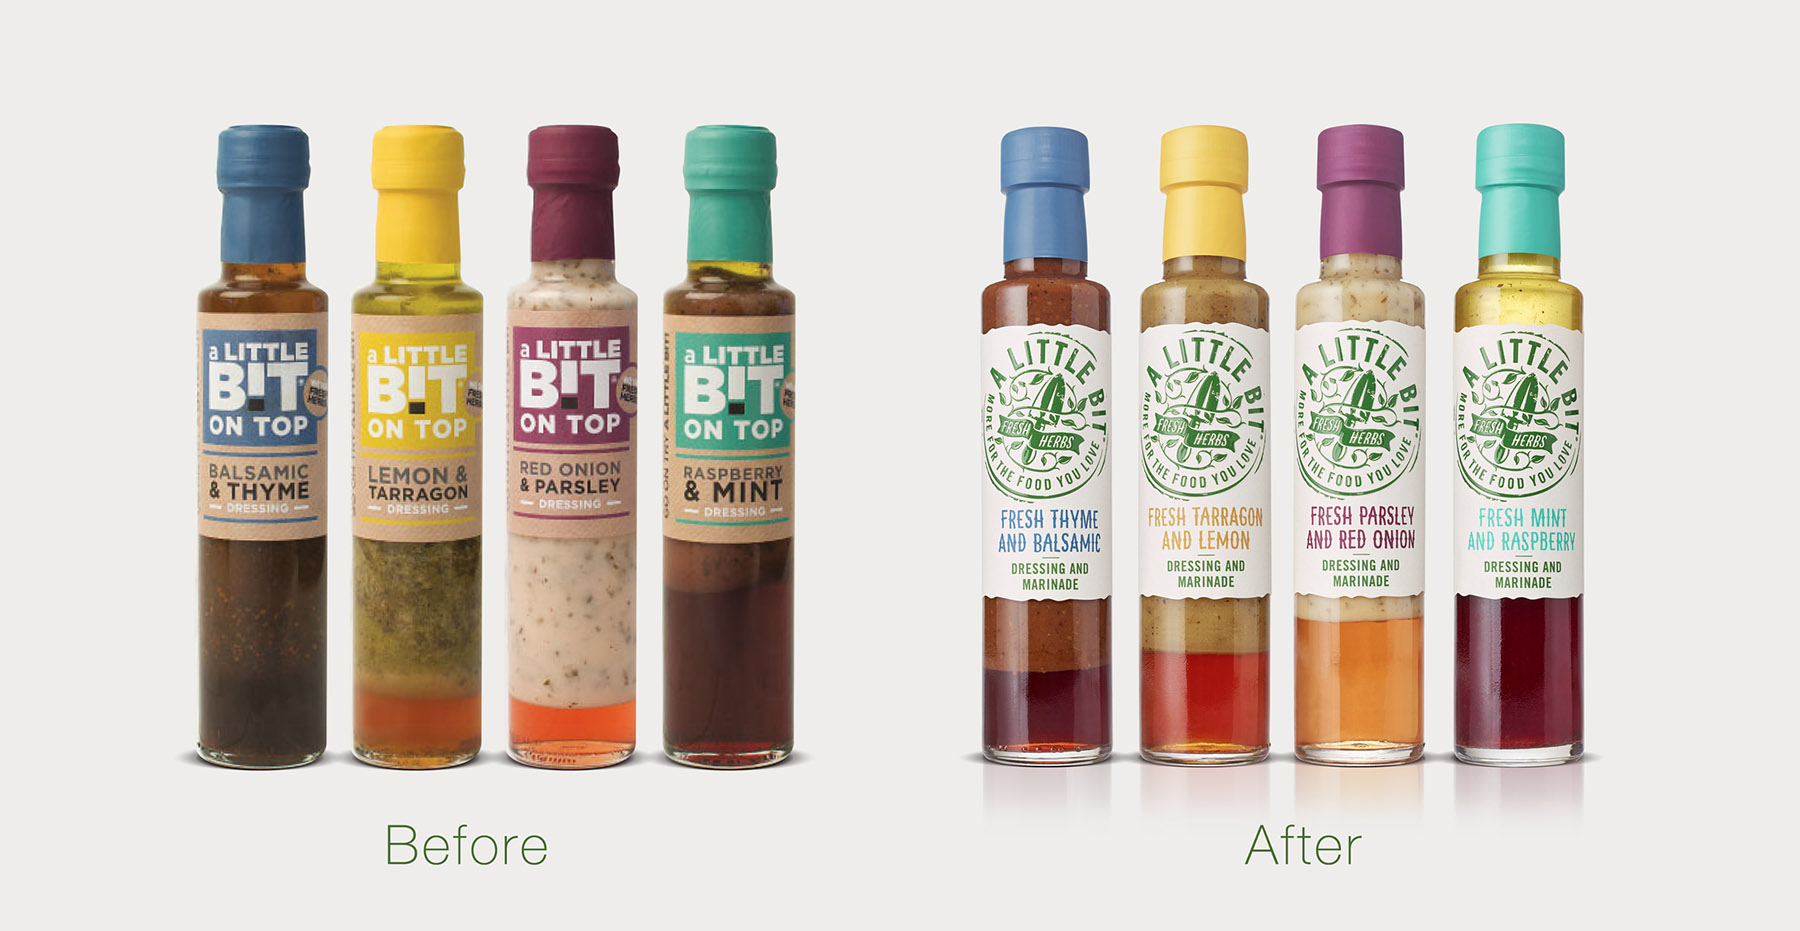 A Little Bit branding and packaging design before and after